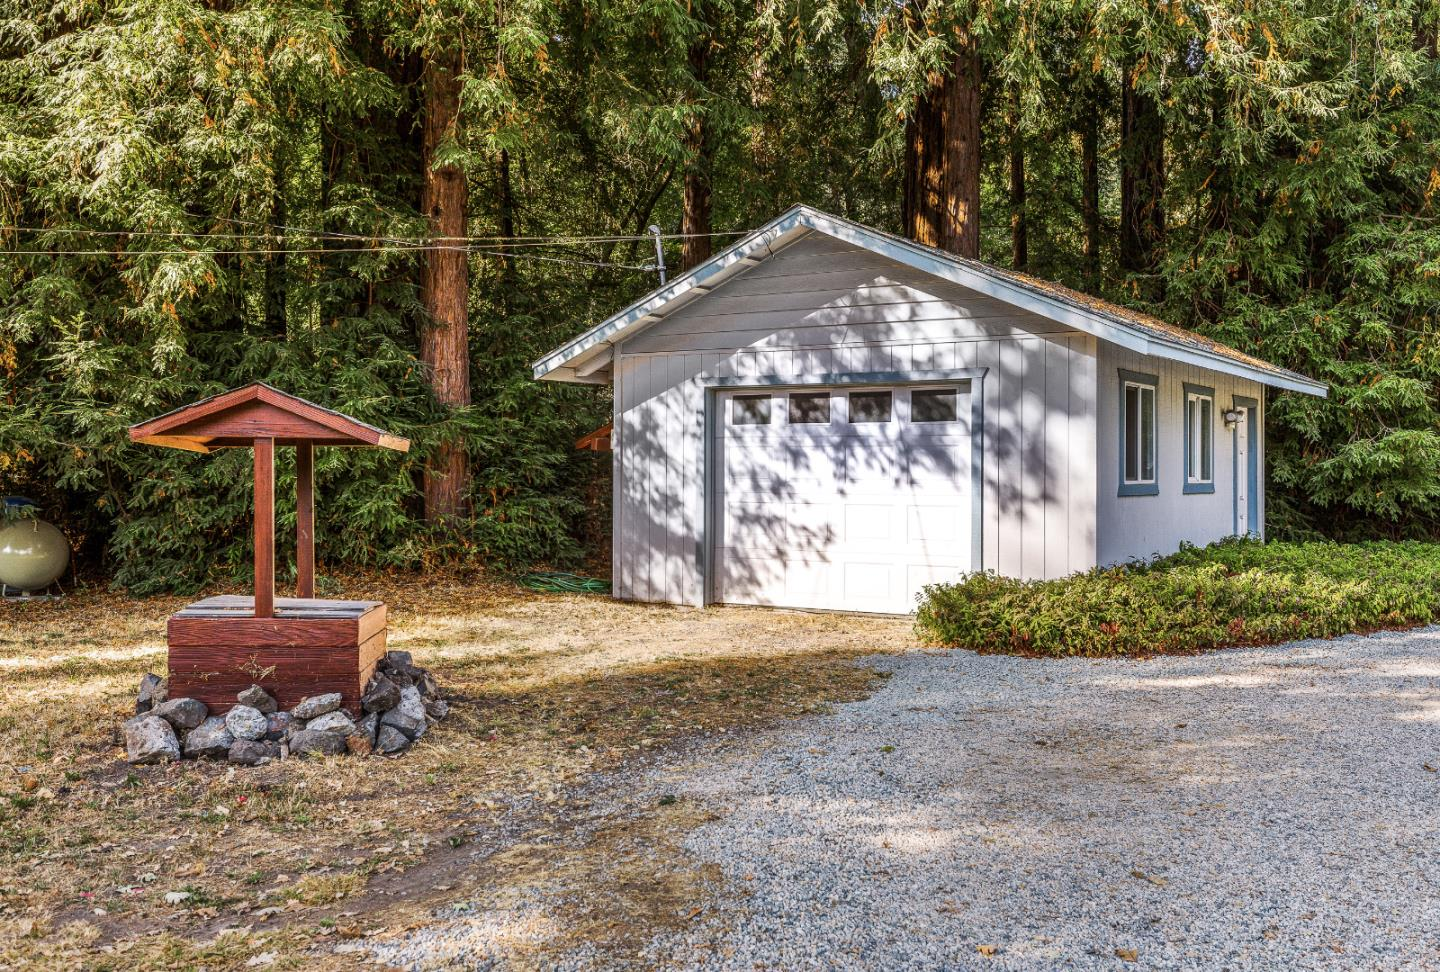 782 Lockhart Gulch Road Scotts Valley, CA 95066 - MLS #: ML81722213